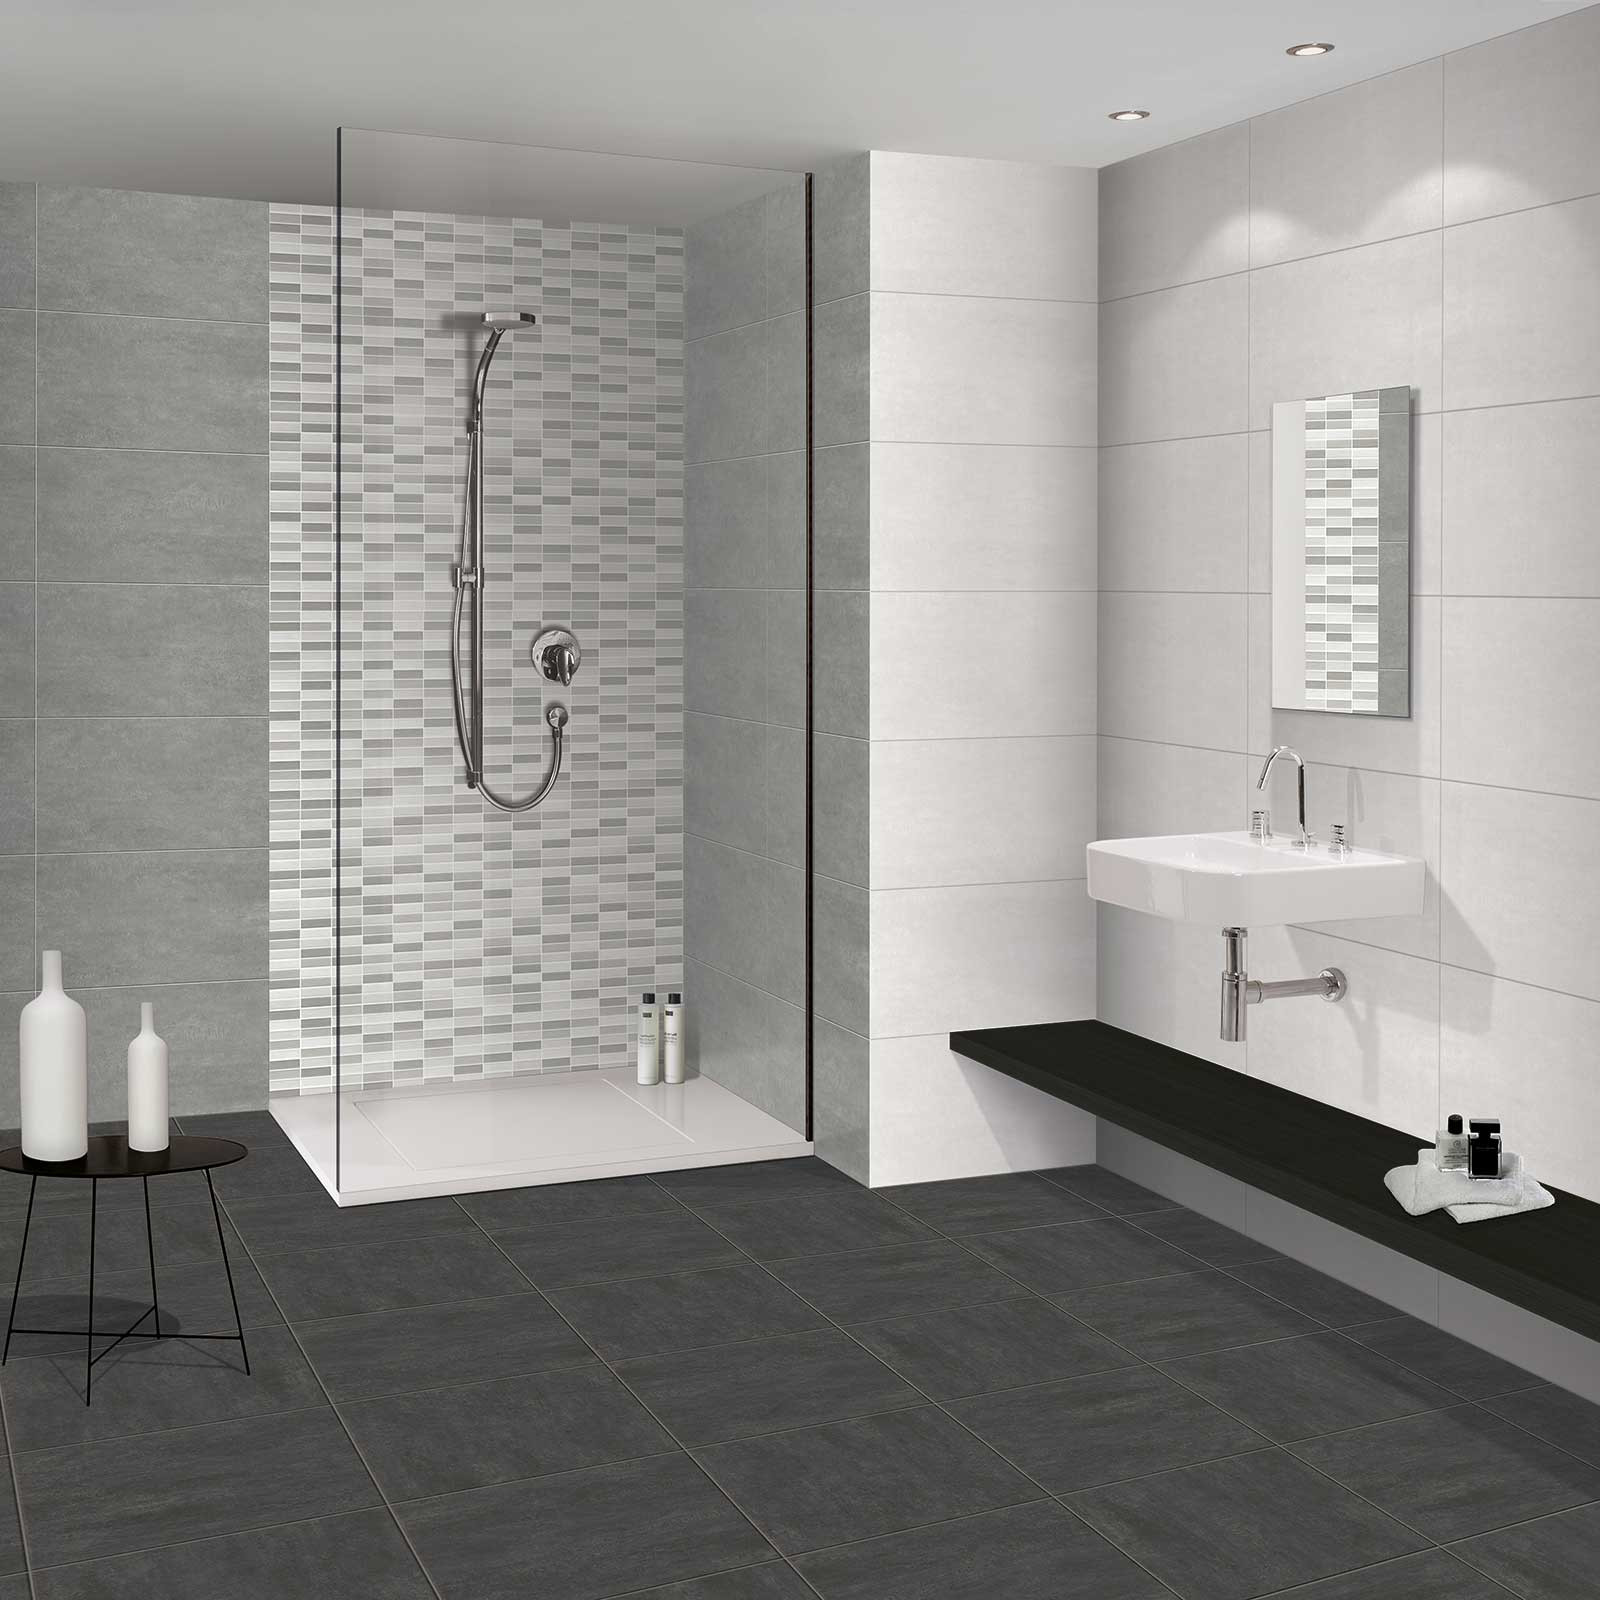 Serpal Perla Wall Tile